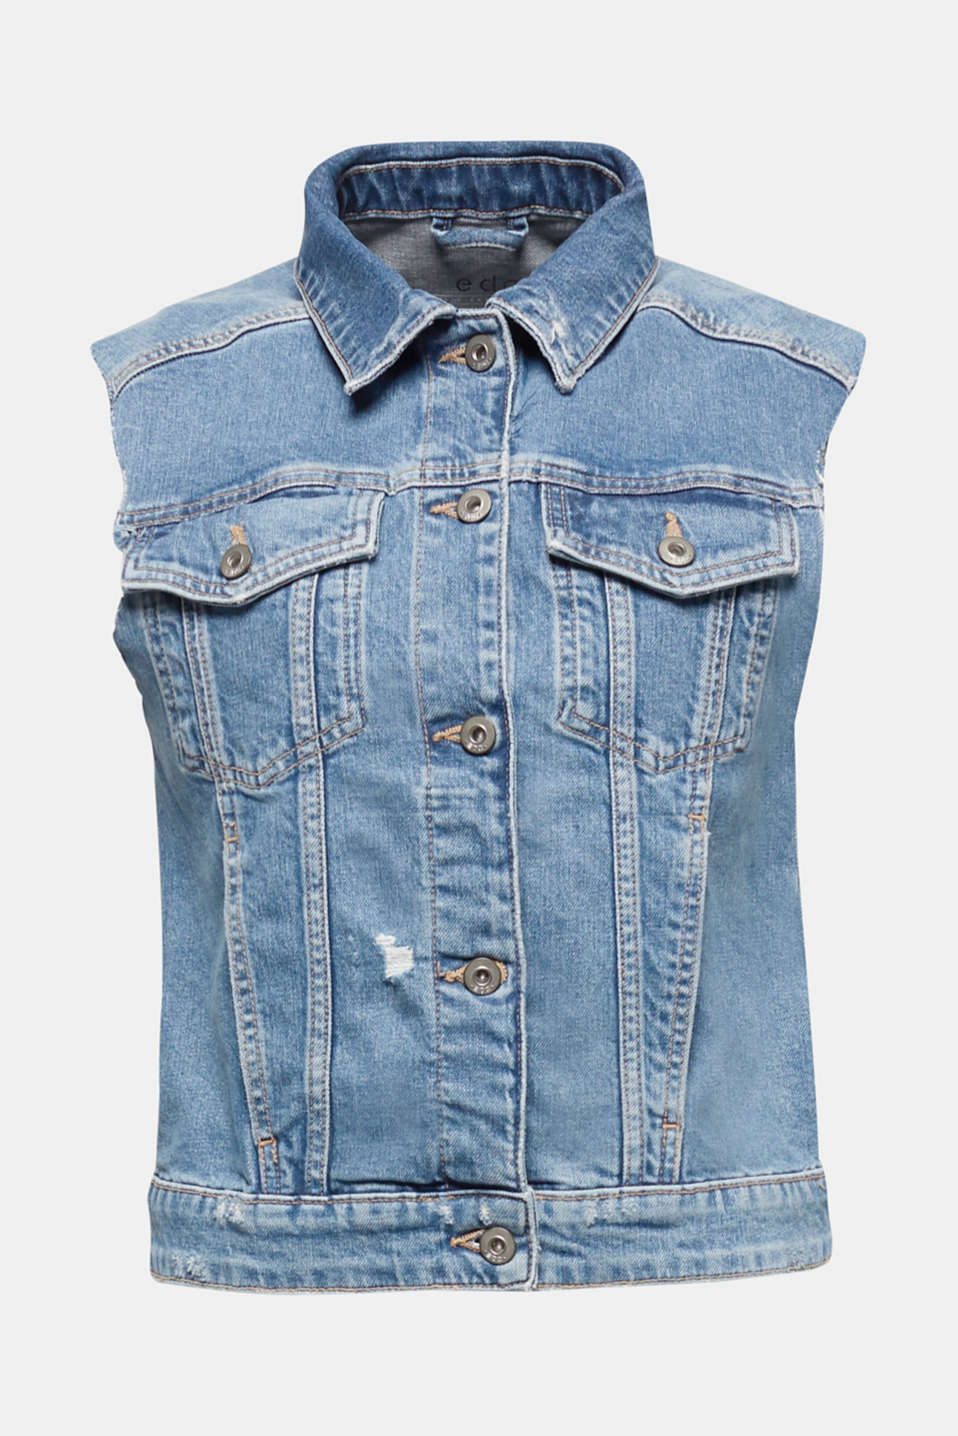 Organic cotton denim waistcoat, BLUE MEDIUM WASH, detail image number 7